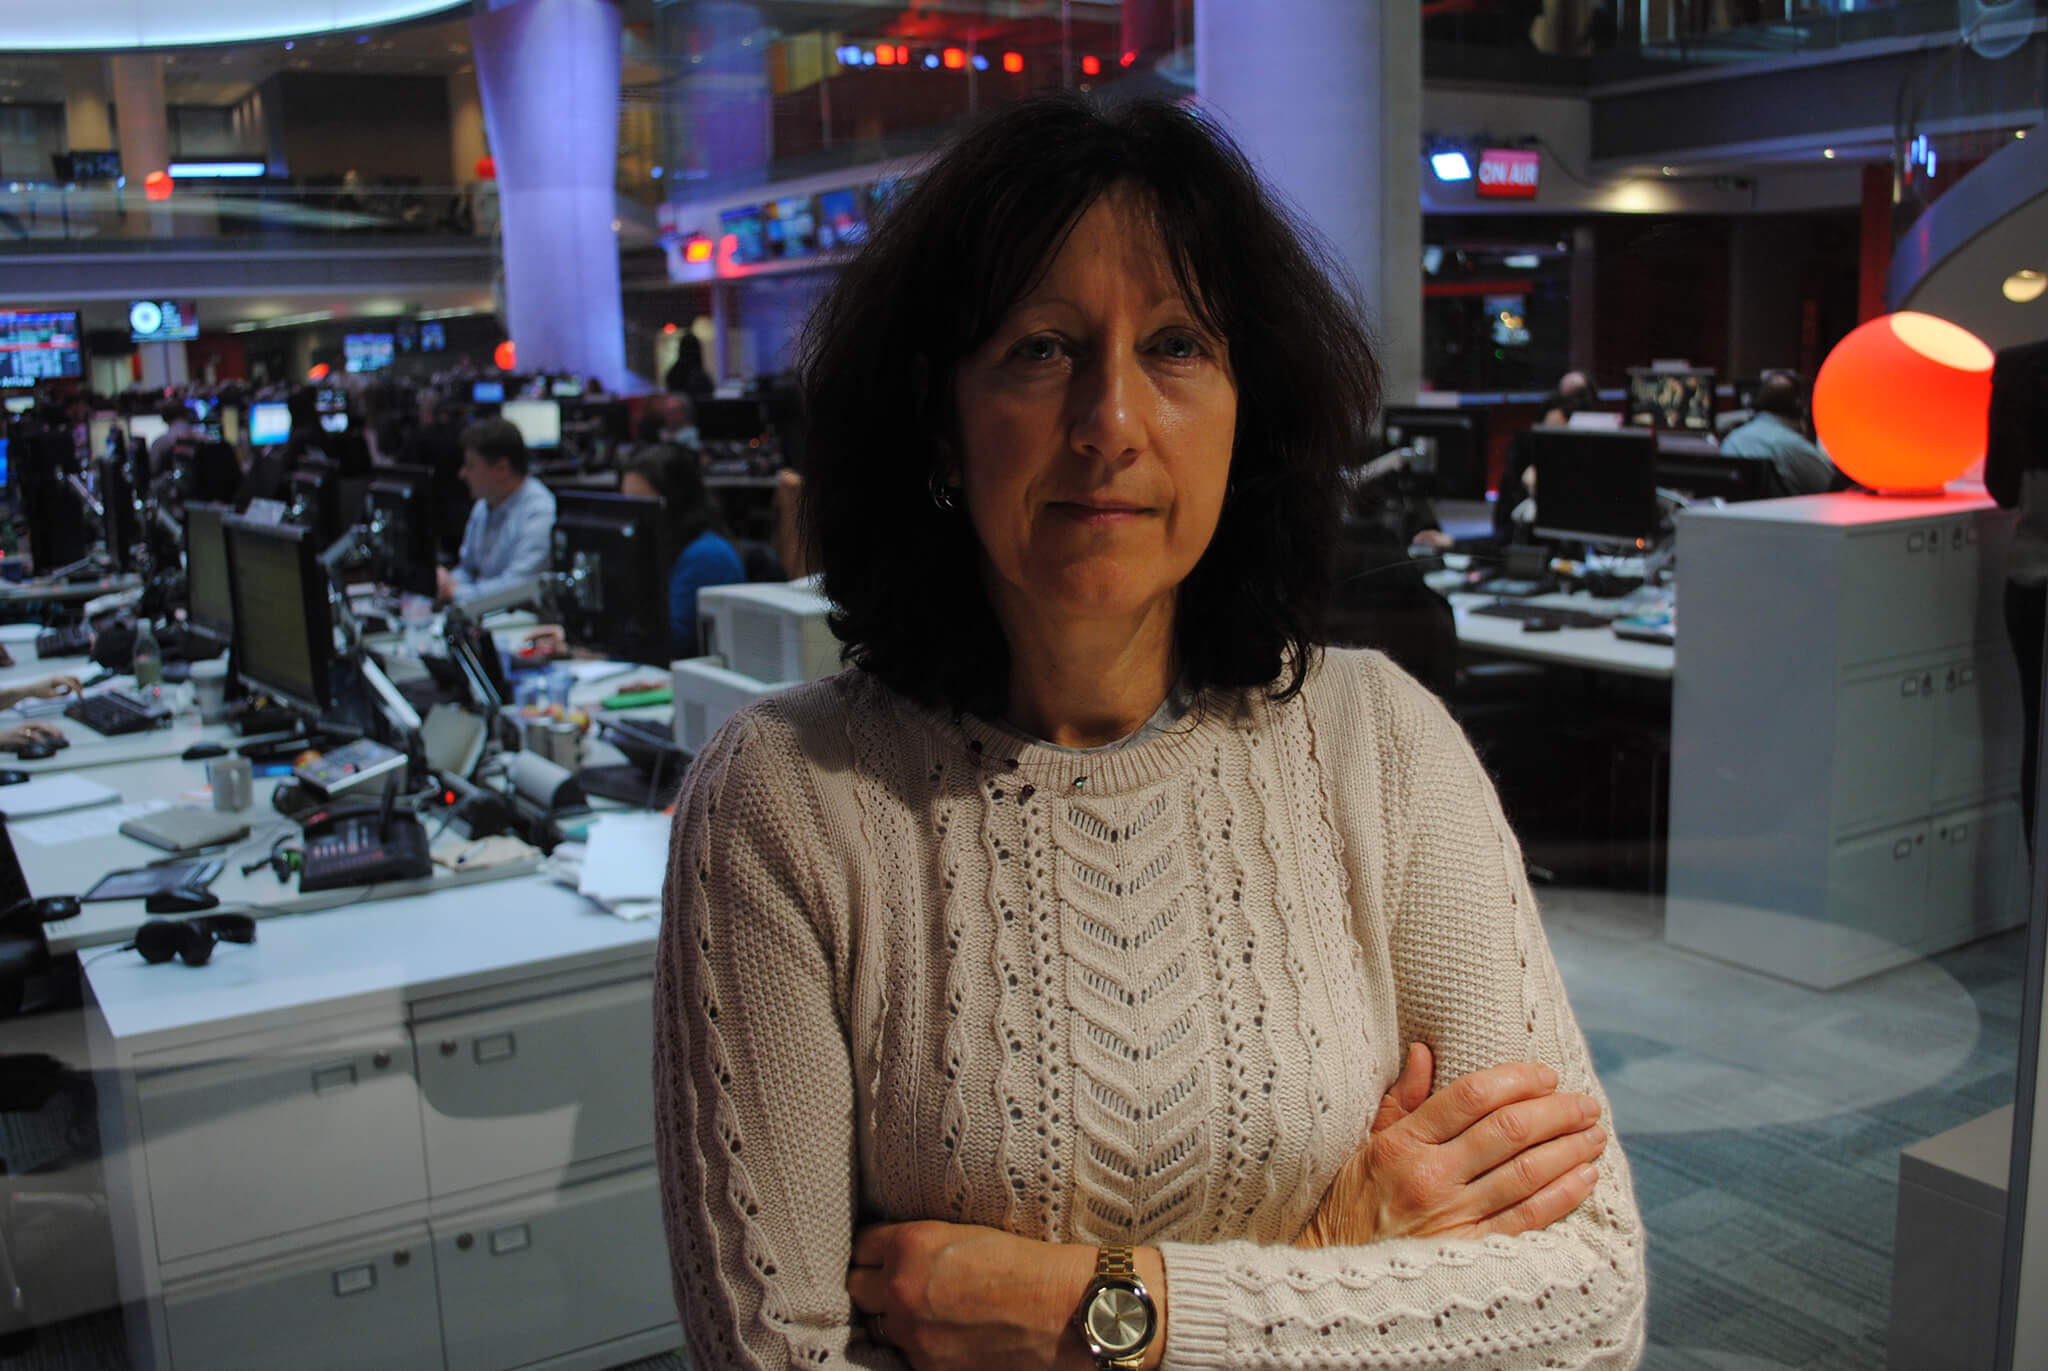 Artist Stella Tooth in the BBC Newsroom by Jeff Overs.